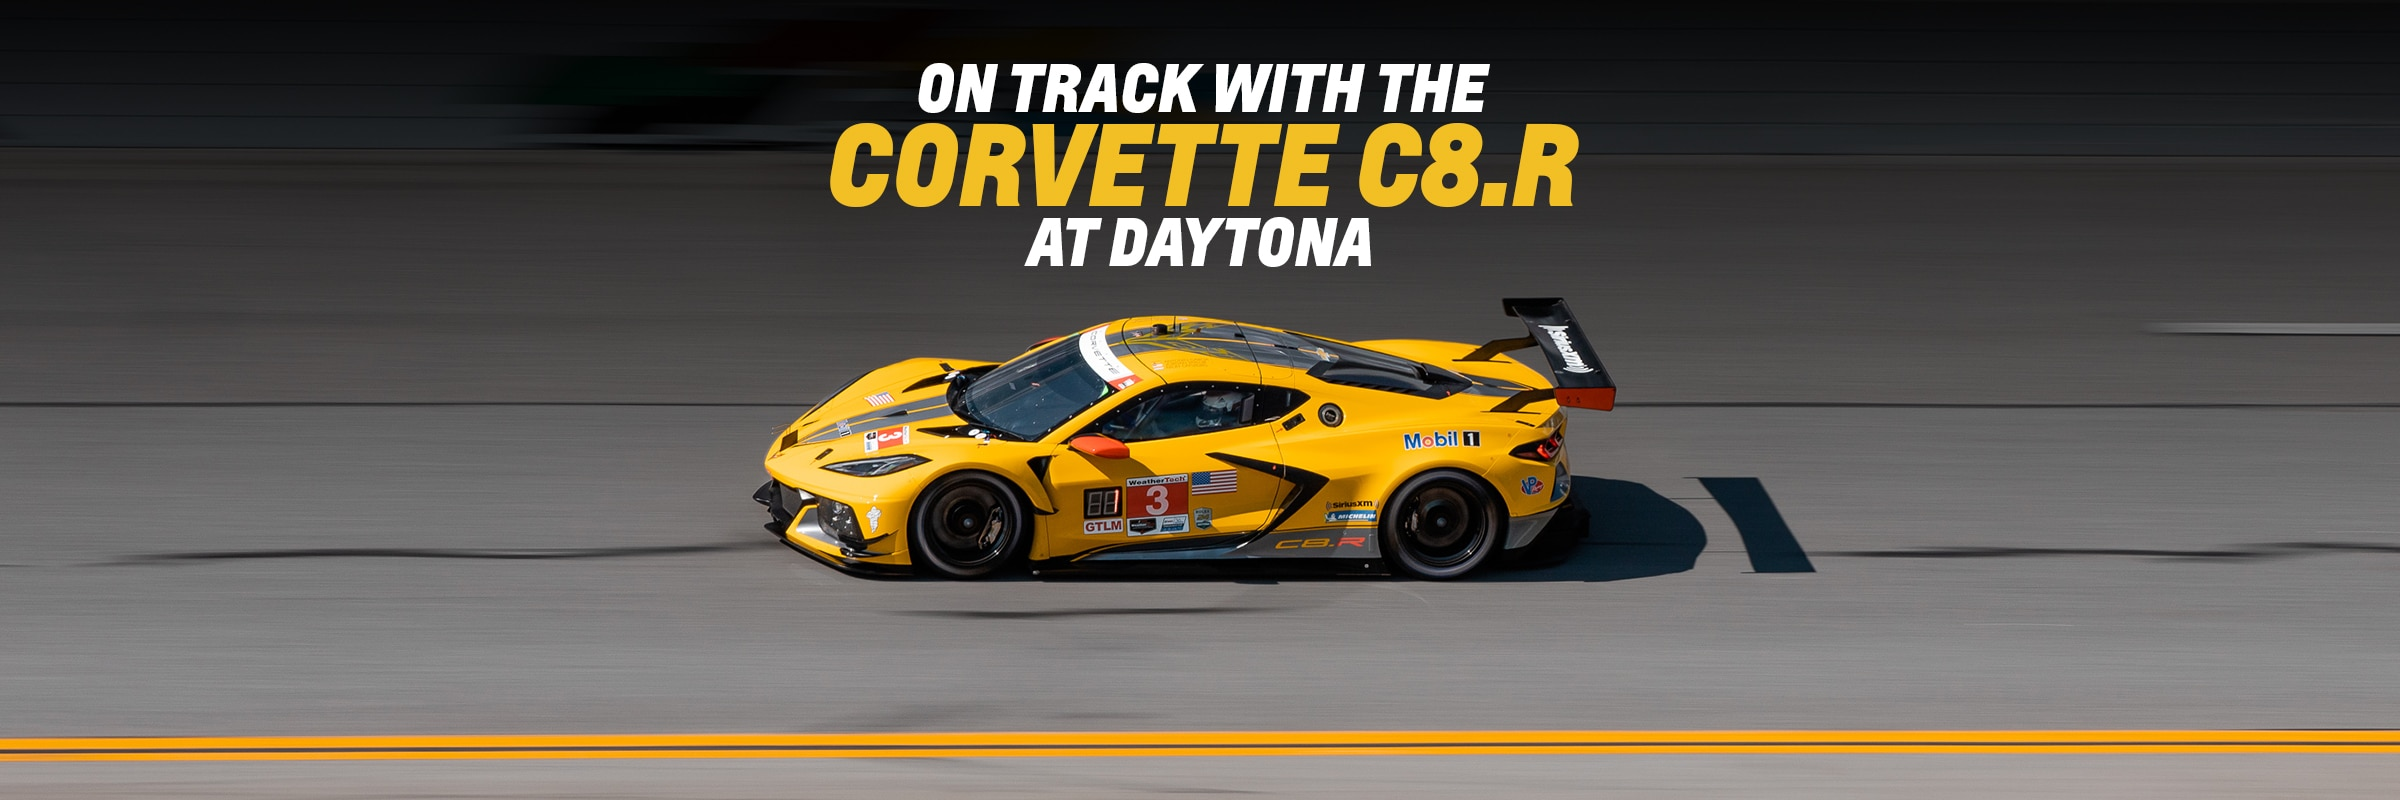 Racing, Motorsports, Events, Chevy, Chevrolet, Chevrolet Performance, Rolex 24, Rolex 24 at Daytona, Daytona, Daytona International Speedway, Endurance racing, Sports Cars, Corvette, Corvette C8.R, C8.R, Corvette Racing, IMSA, IMSA WeatherTech SportsCar Championship, IWSC, GT Le Mans, GTLM,  Wallpaper, Wallpaper Wednesday, Downloads